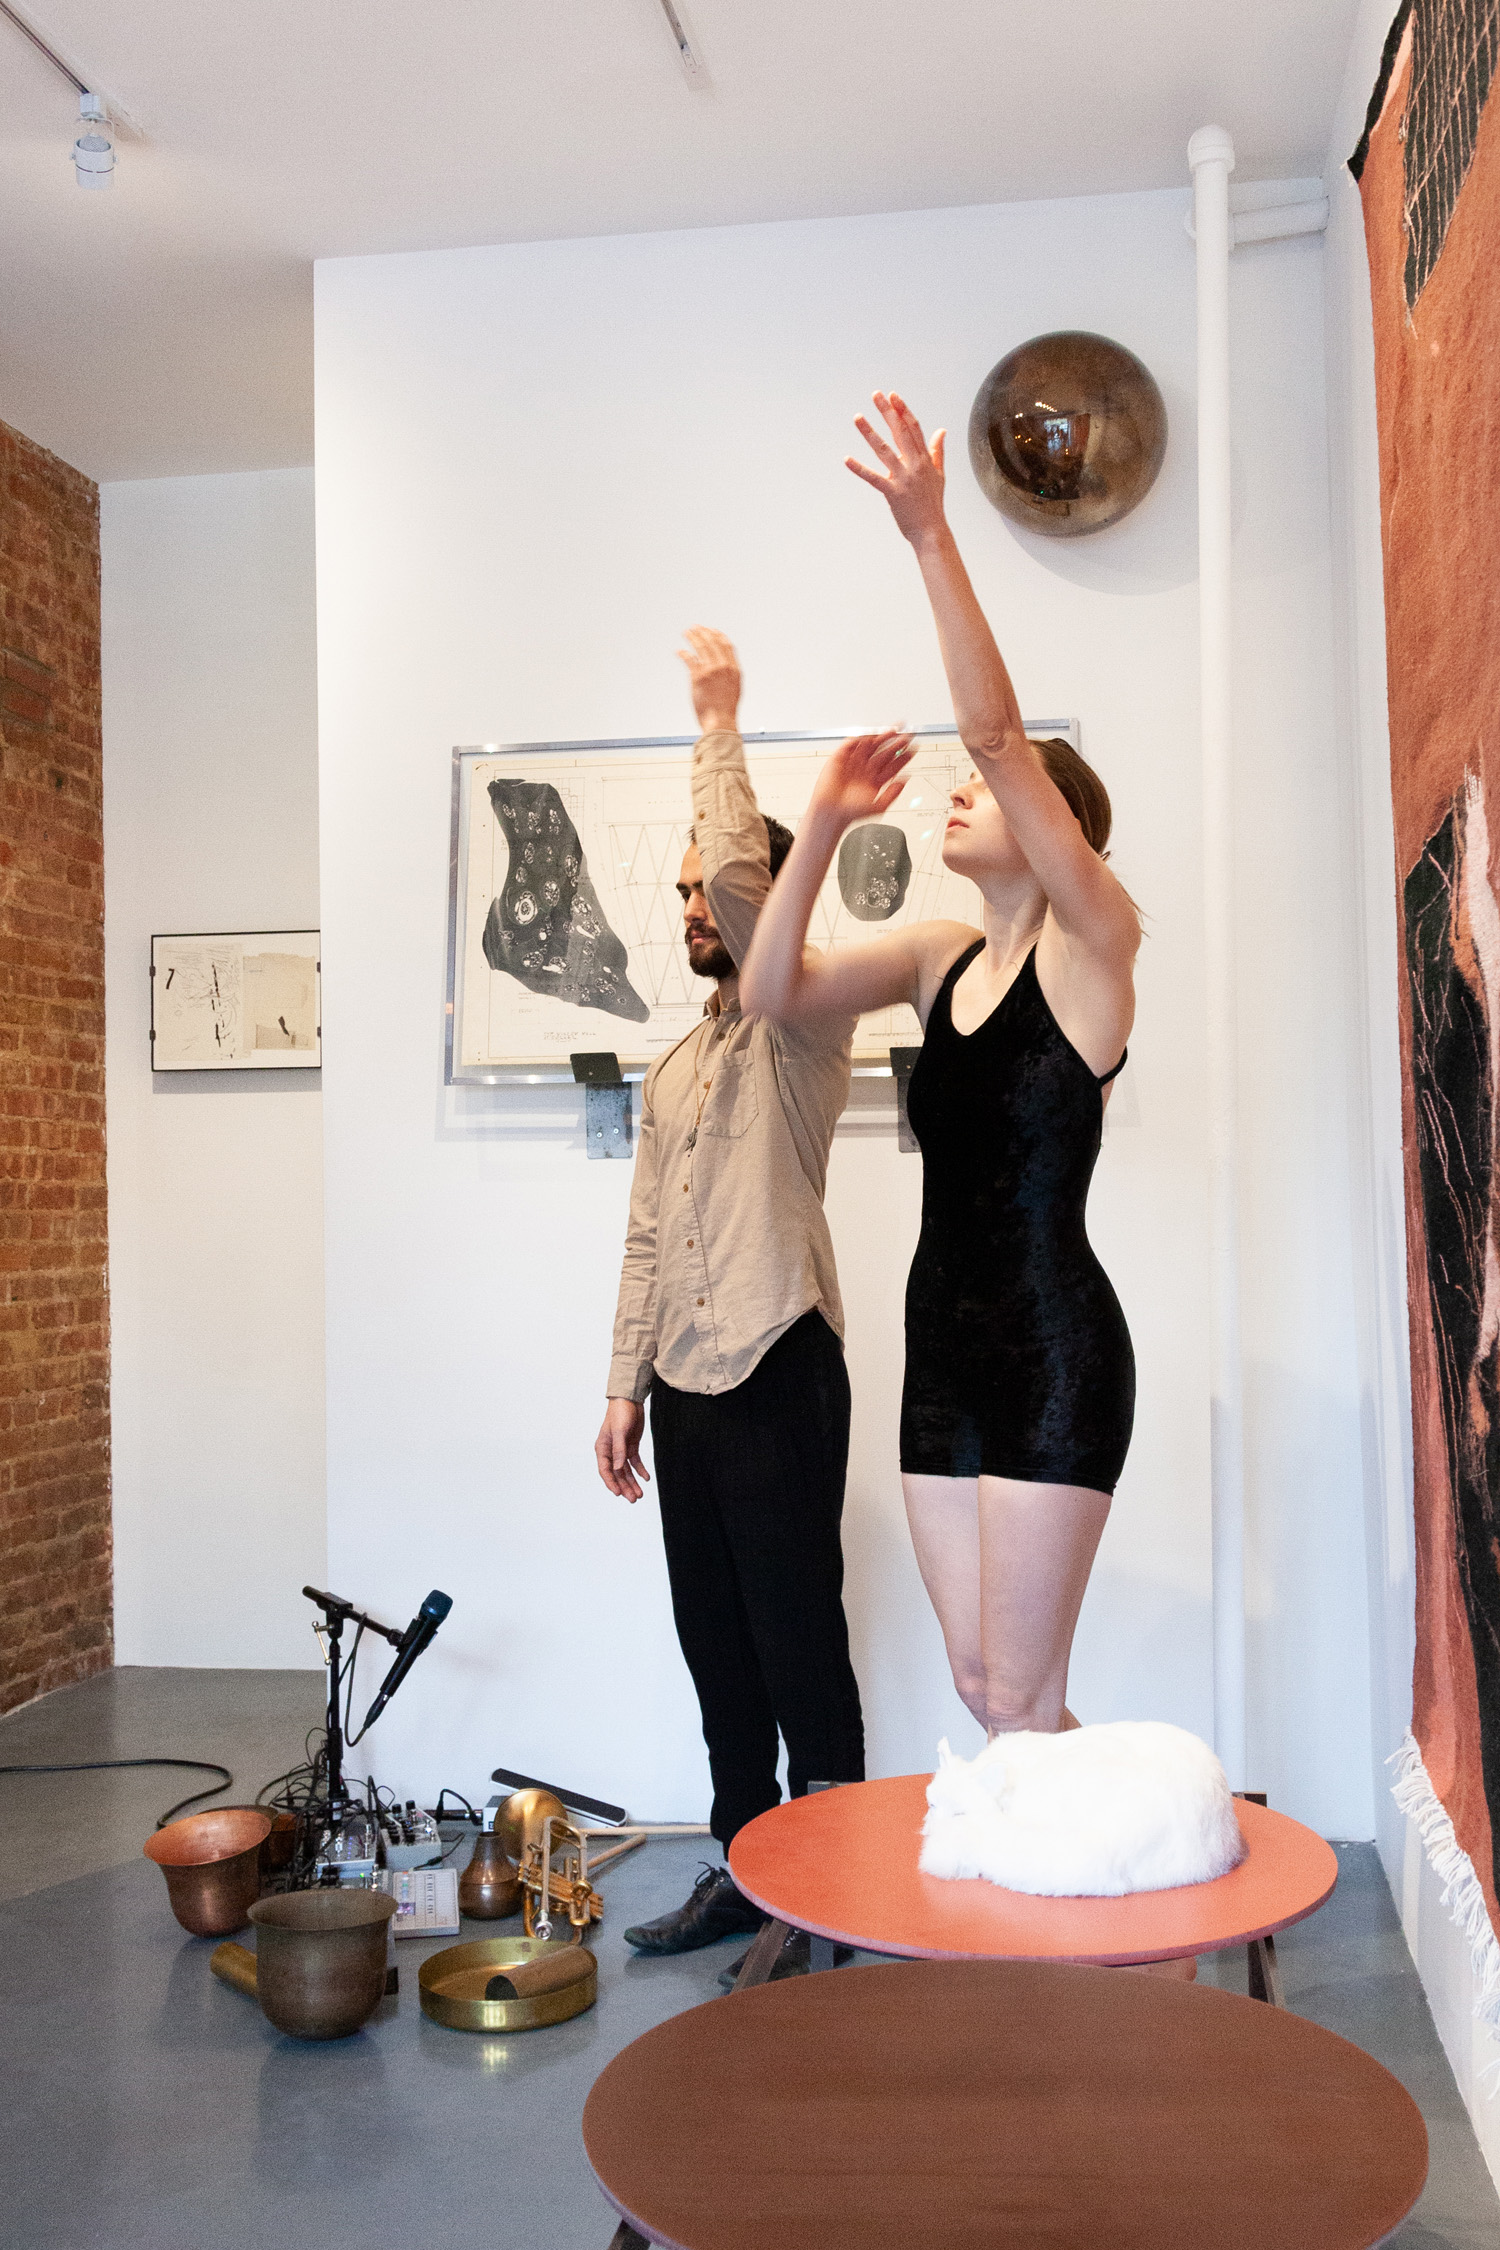 Sarah Entwistle with Rhys Tivey and Natalie Deryn Johnson,  You shout first, and I will shout after,  performance at signs and symbols, March 10, 2019